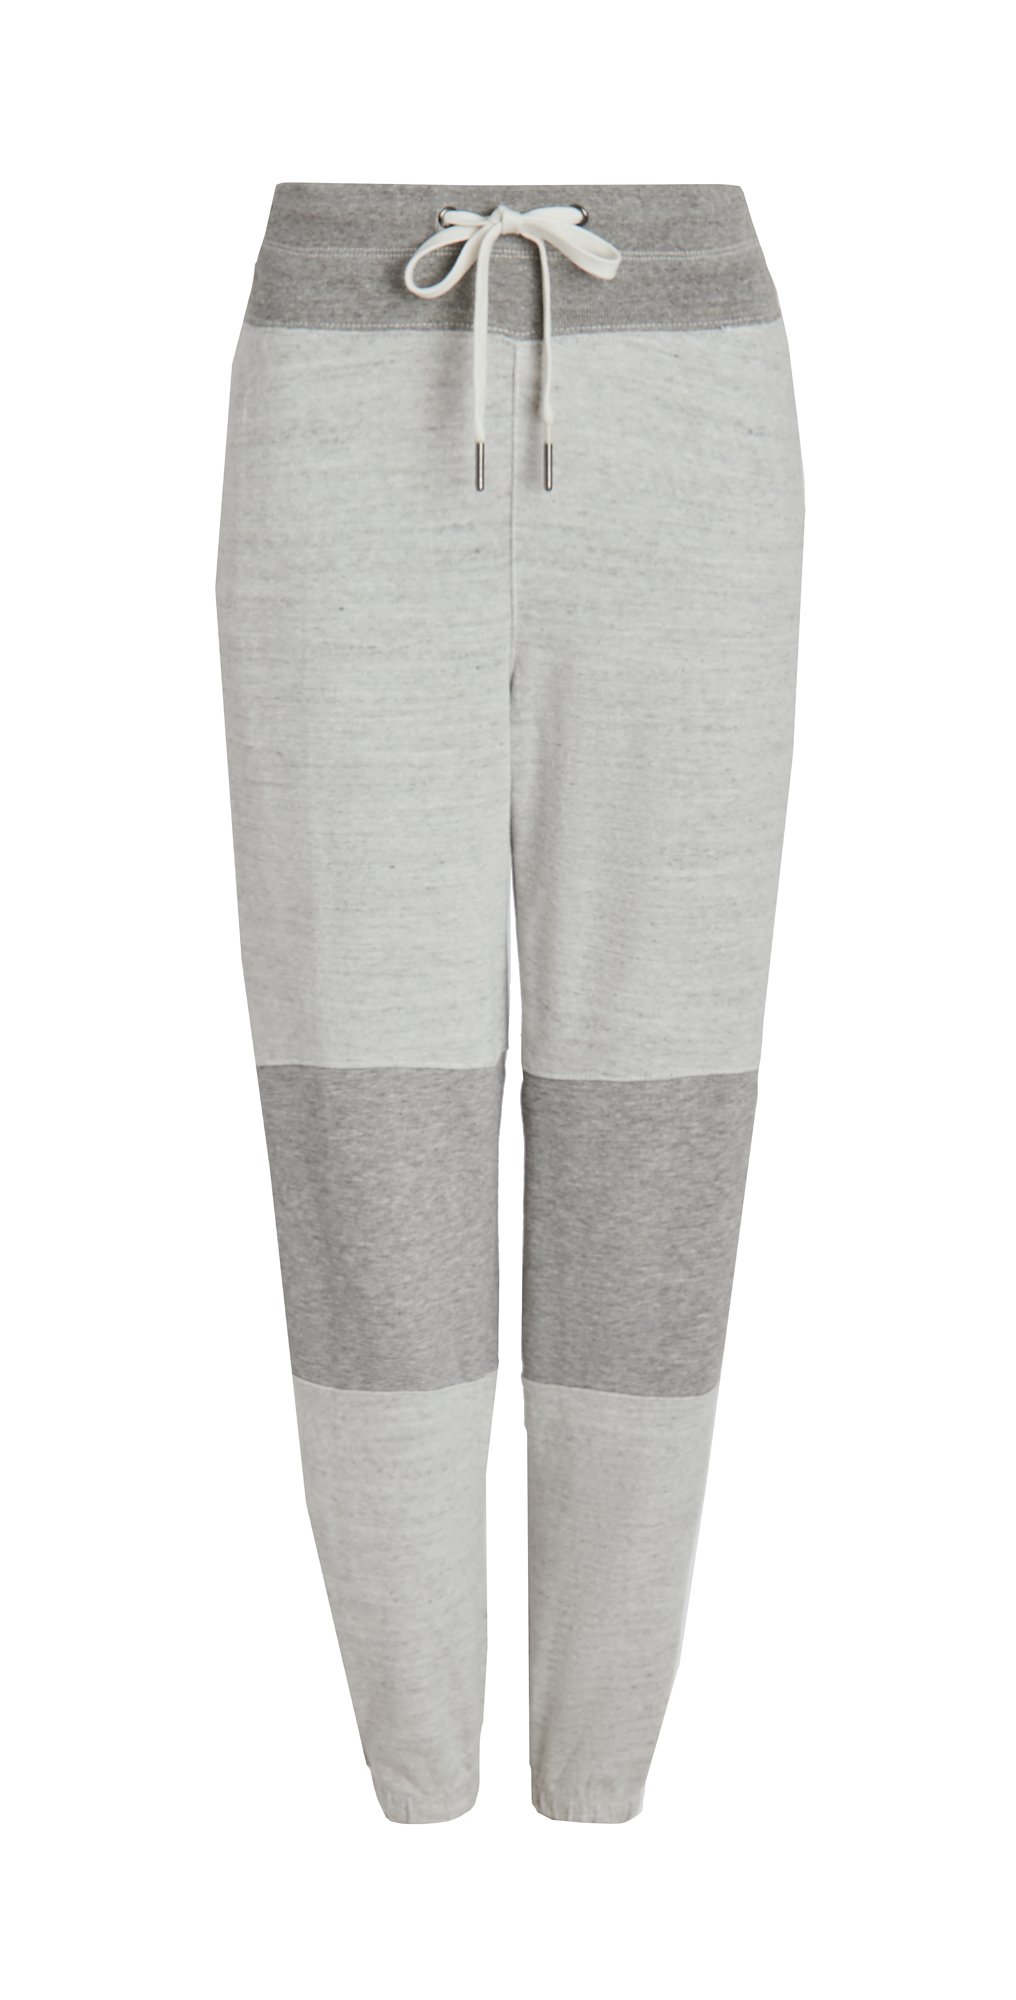 James Perse Patched Sweatpants